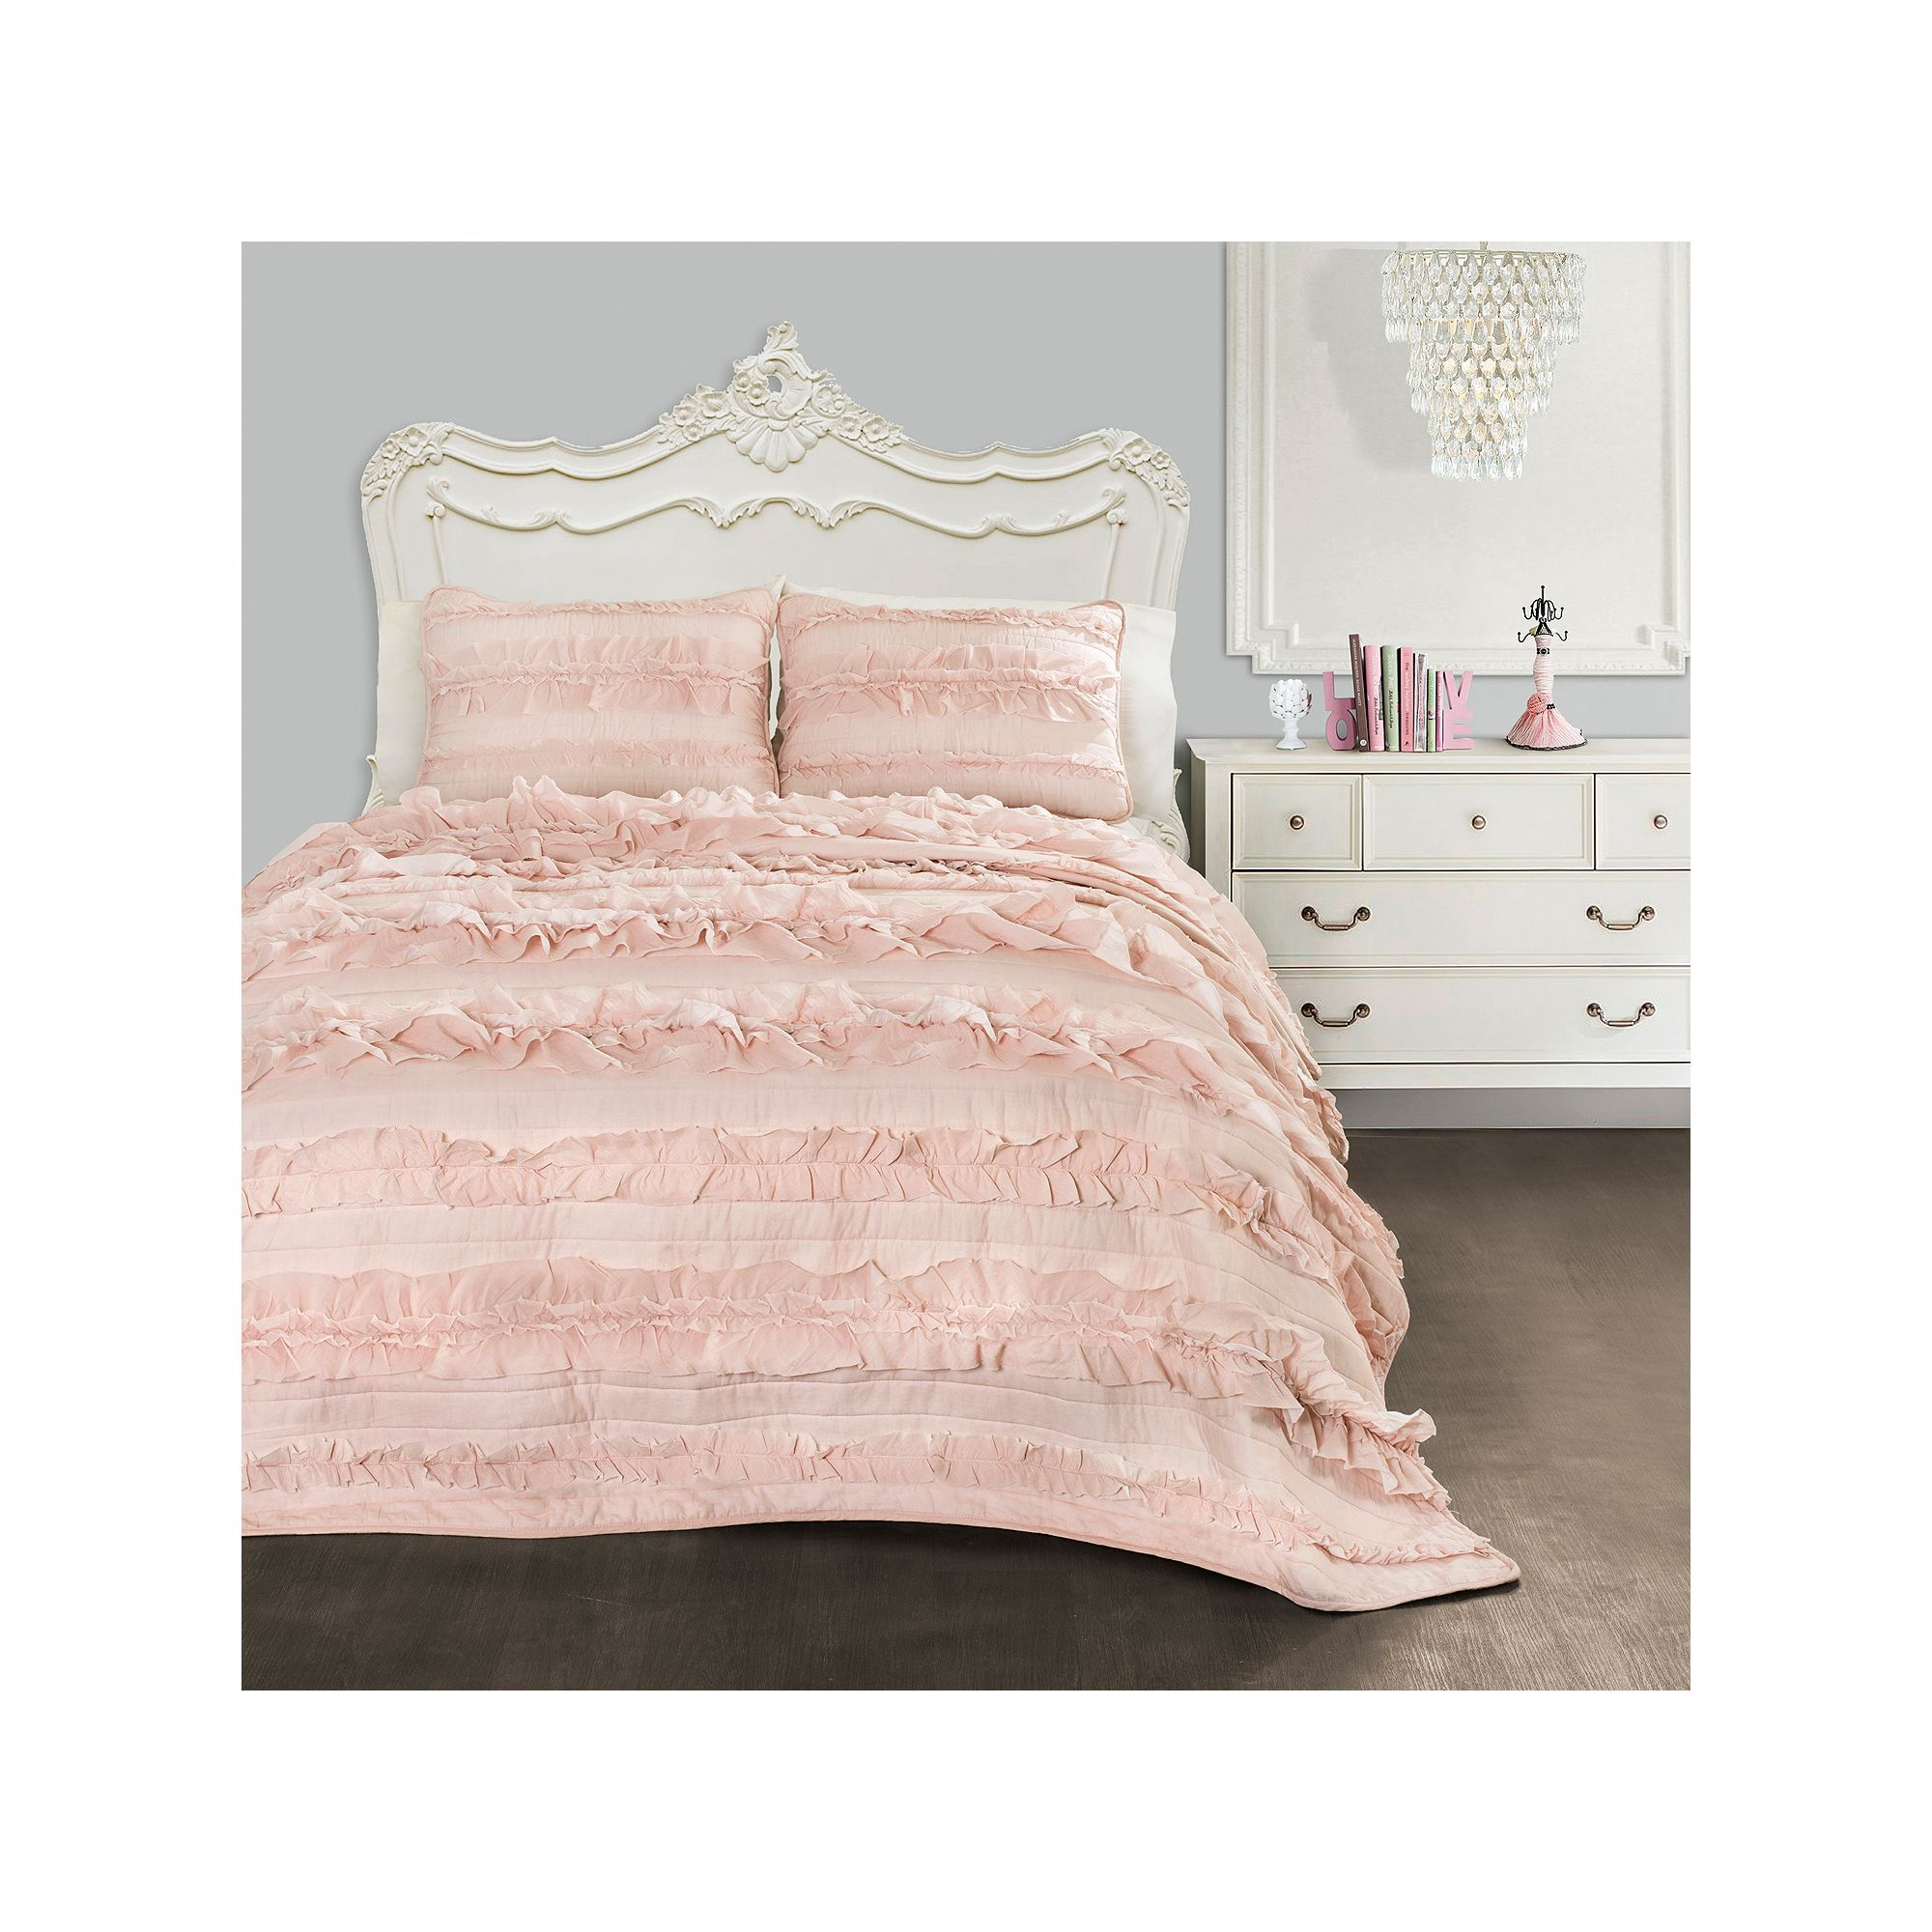 Lush Decor Belle Bedding Lush Decor Belle Quilt Set Pink  Quilt Sets 3 Piece And Bedroom